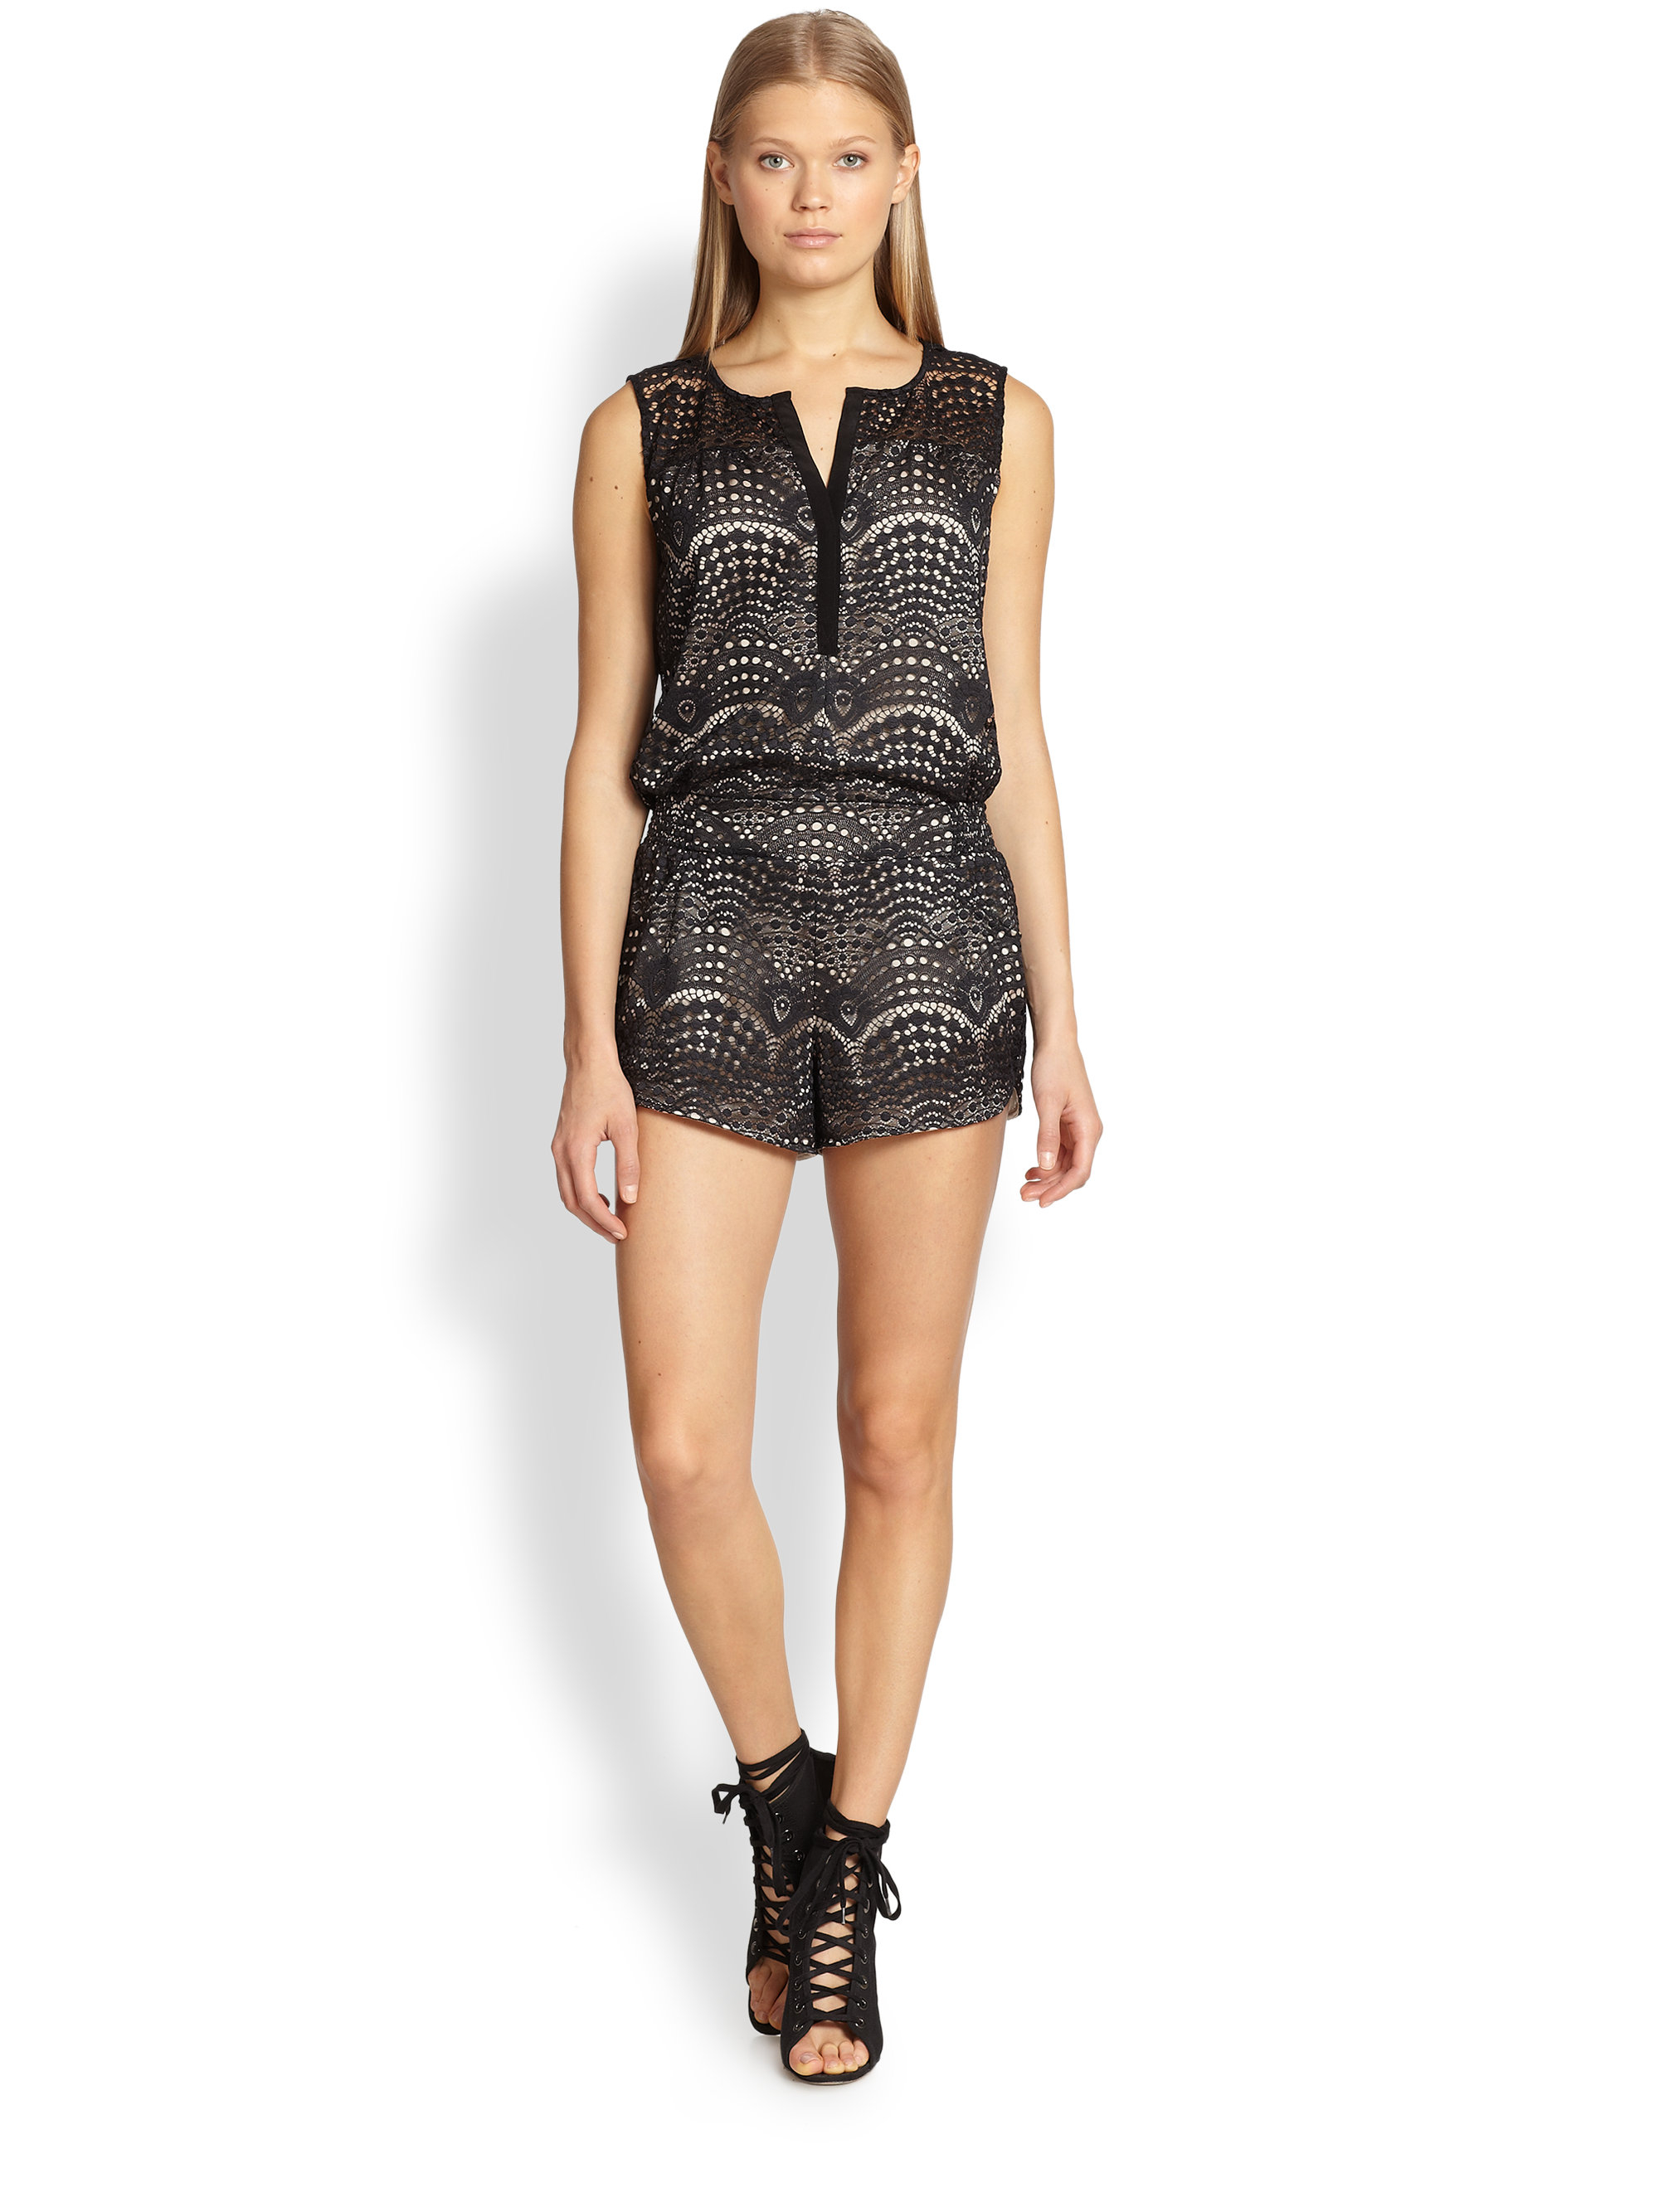 Lyst - Twelfth Street Cynthia Vincent Lace Short Jumpsuit In Black